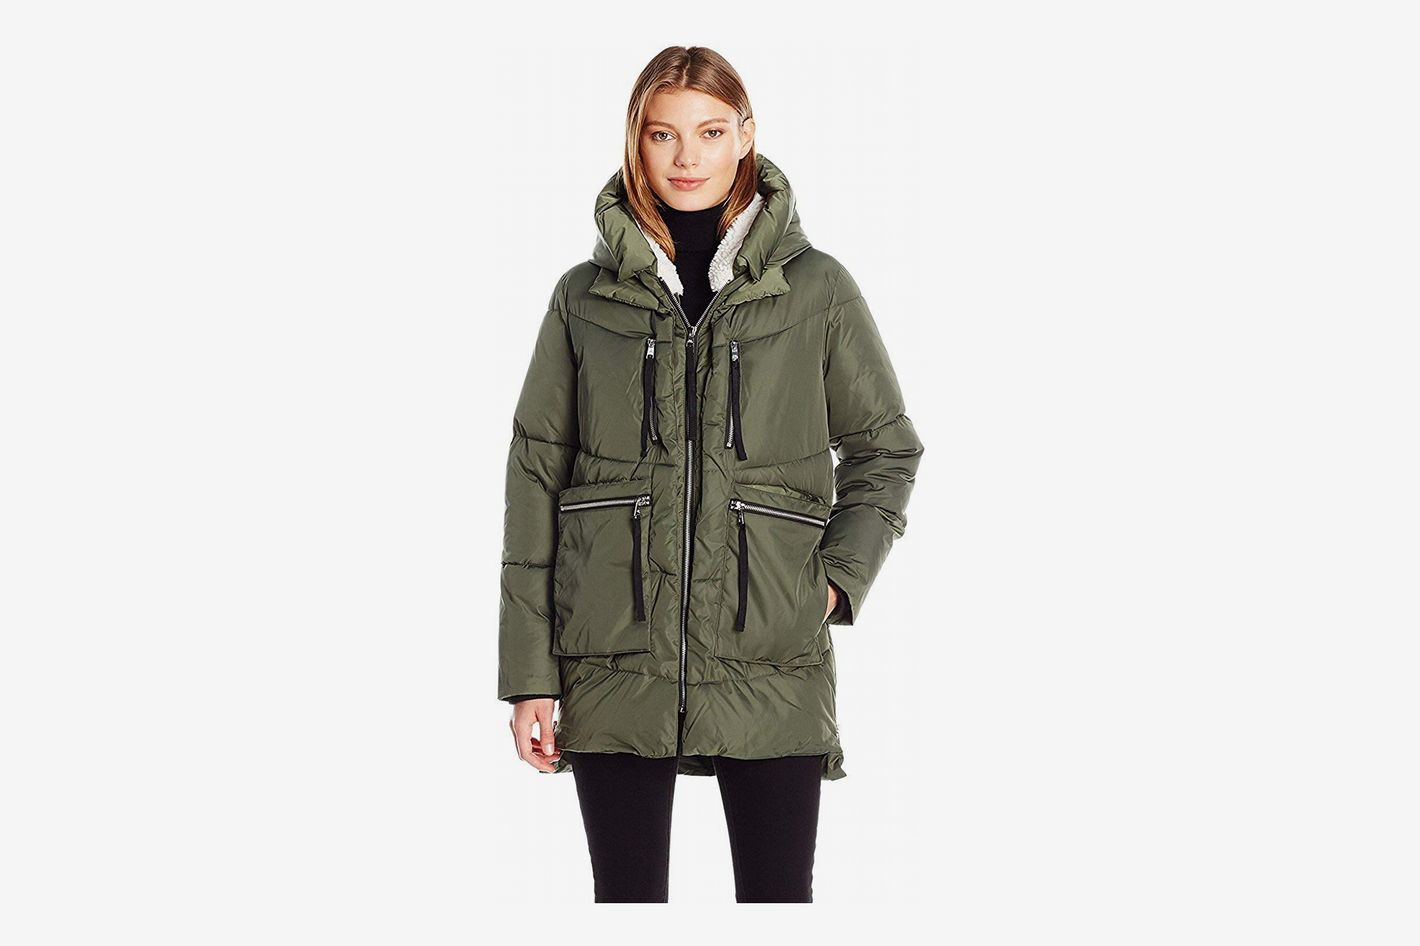 5061c04efe204 The 14 Best Cheap Warm Coats for Winter 2019